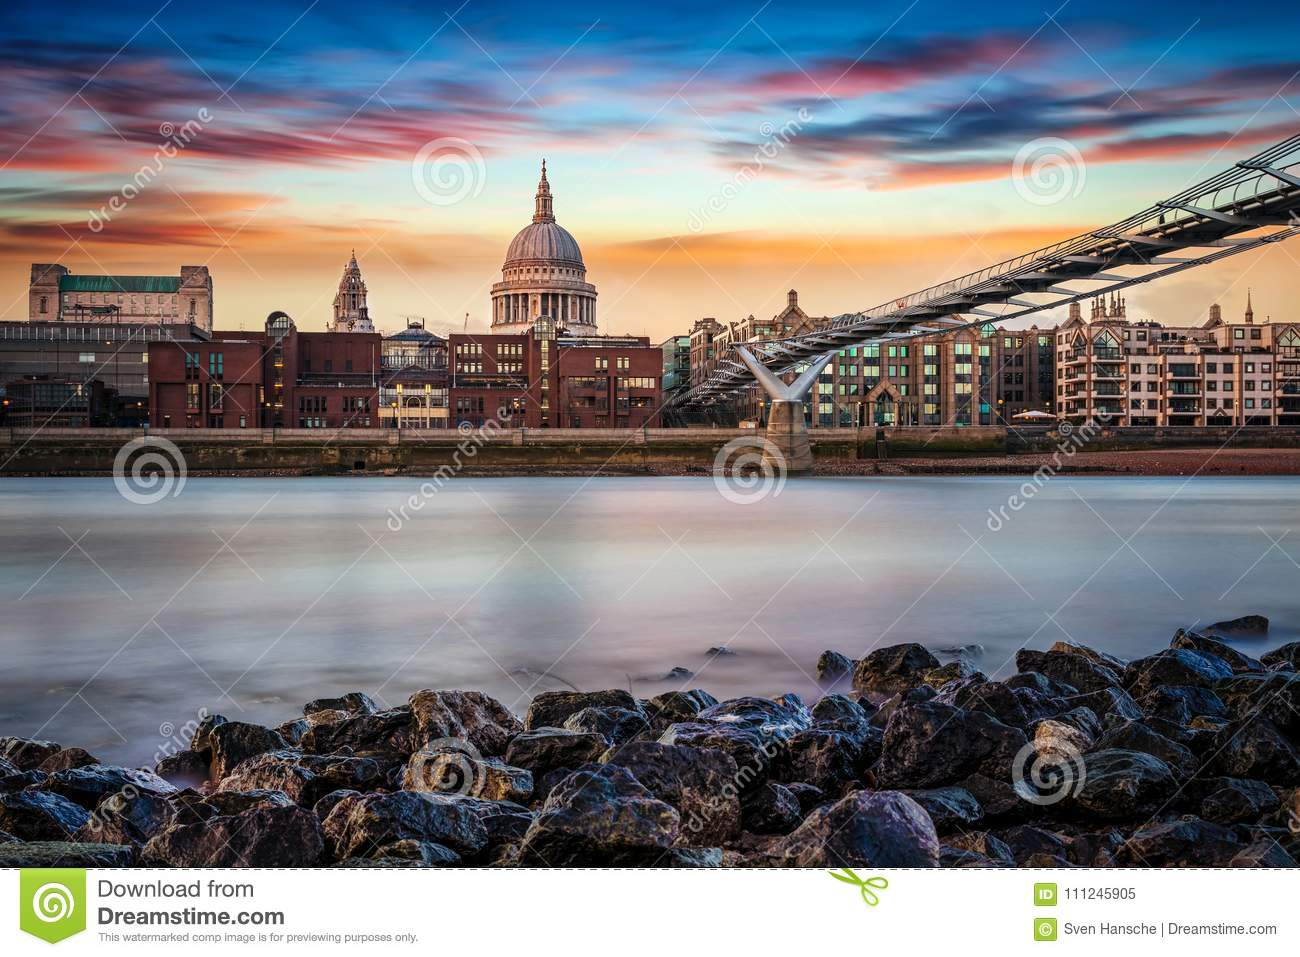 View from the Thames bank to St. Pauls Cathedral in London, UK